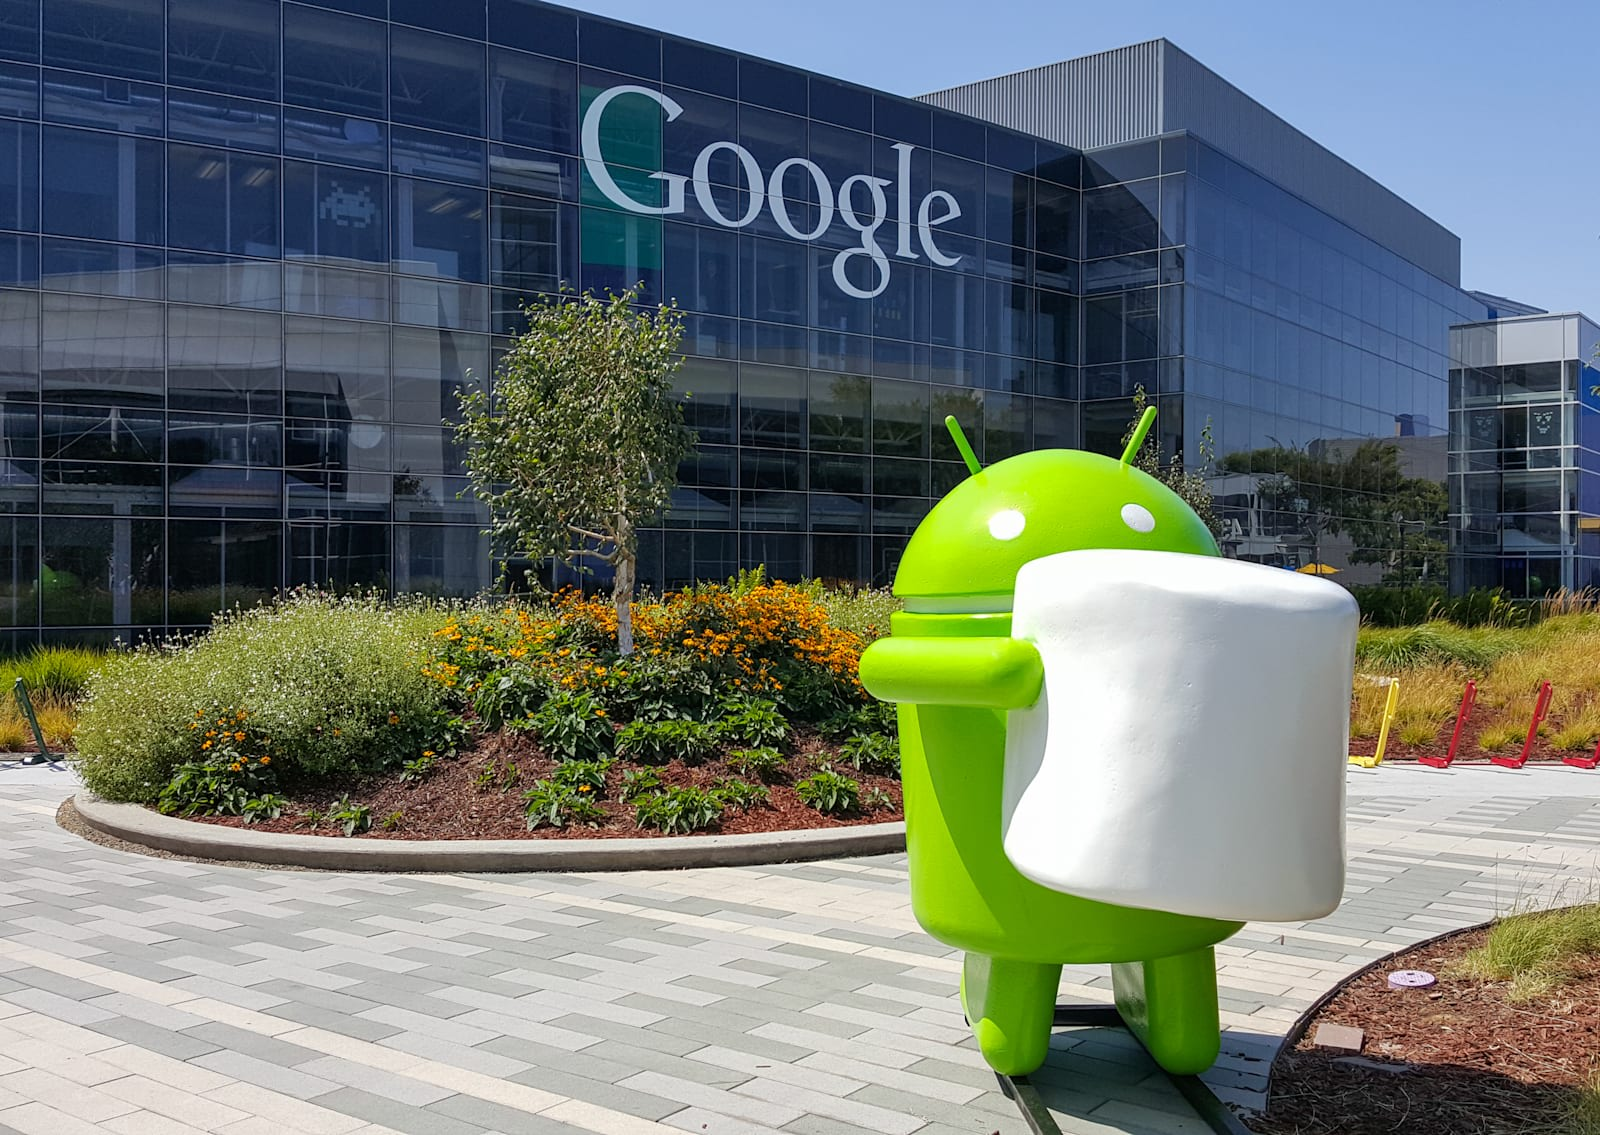 Android malware from Chinese ad firm infects 10 million devices